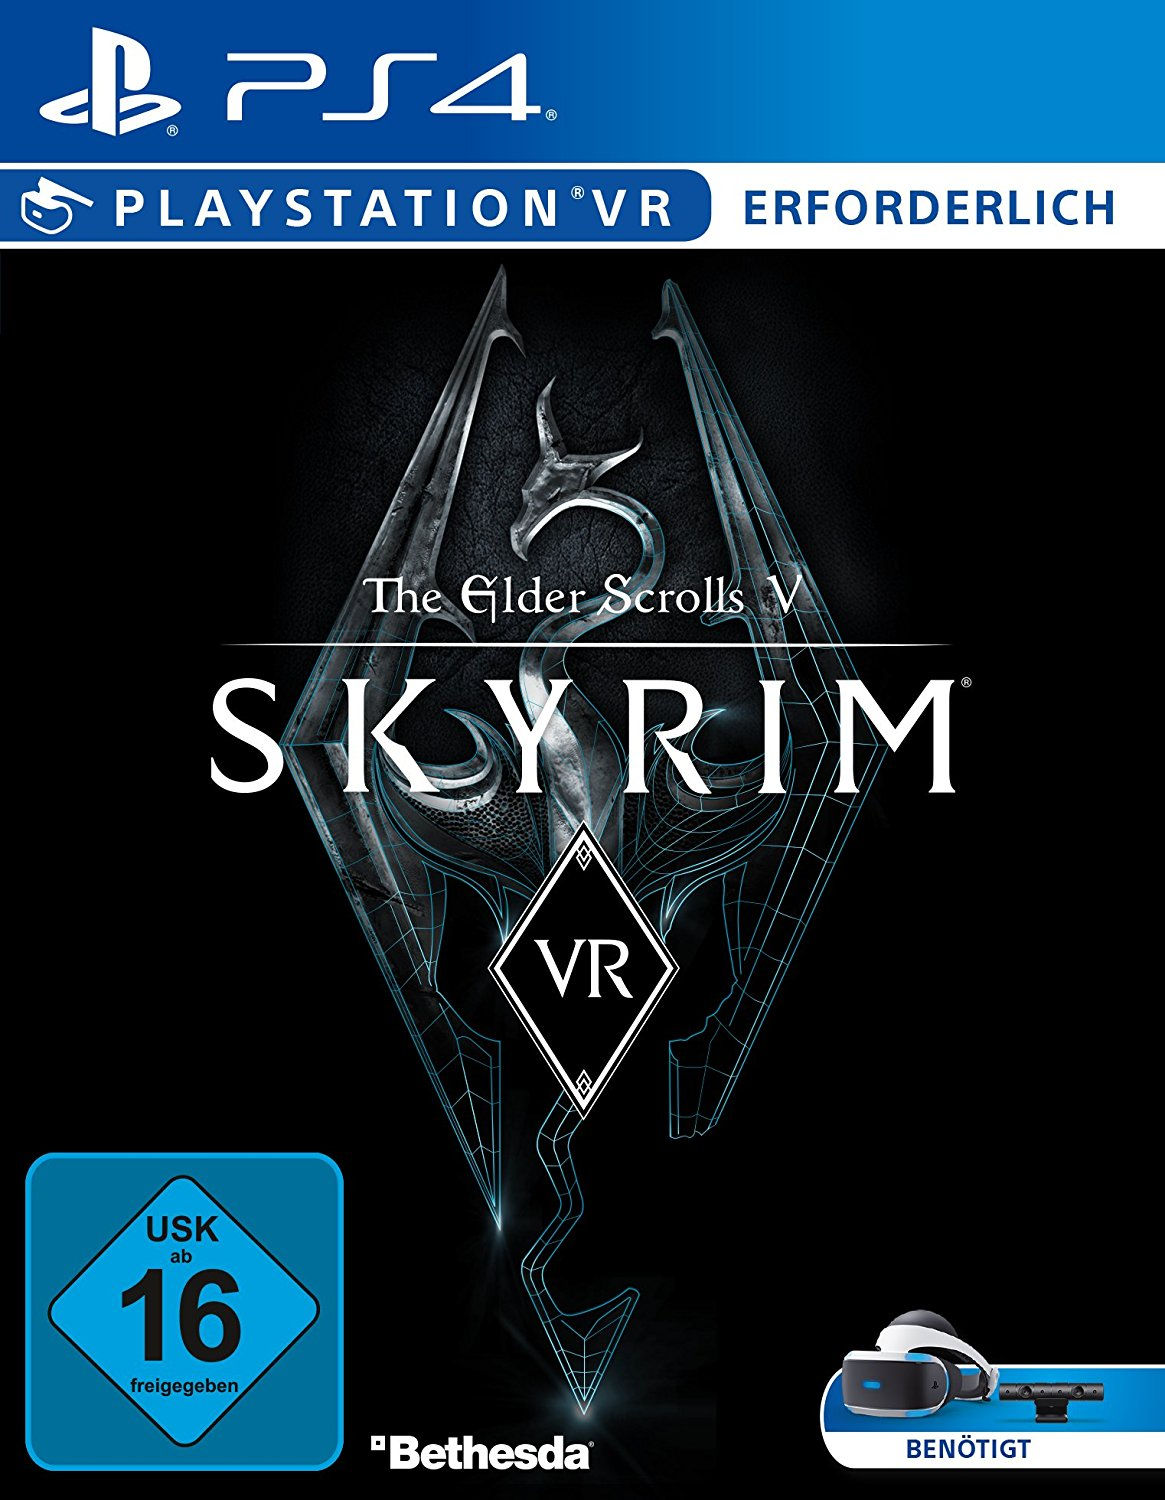 Skyrim VR (VR only)